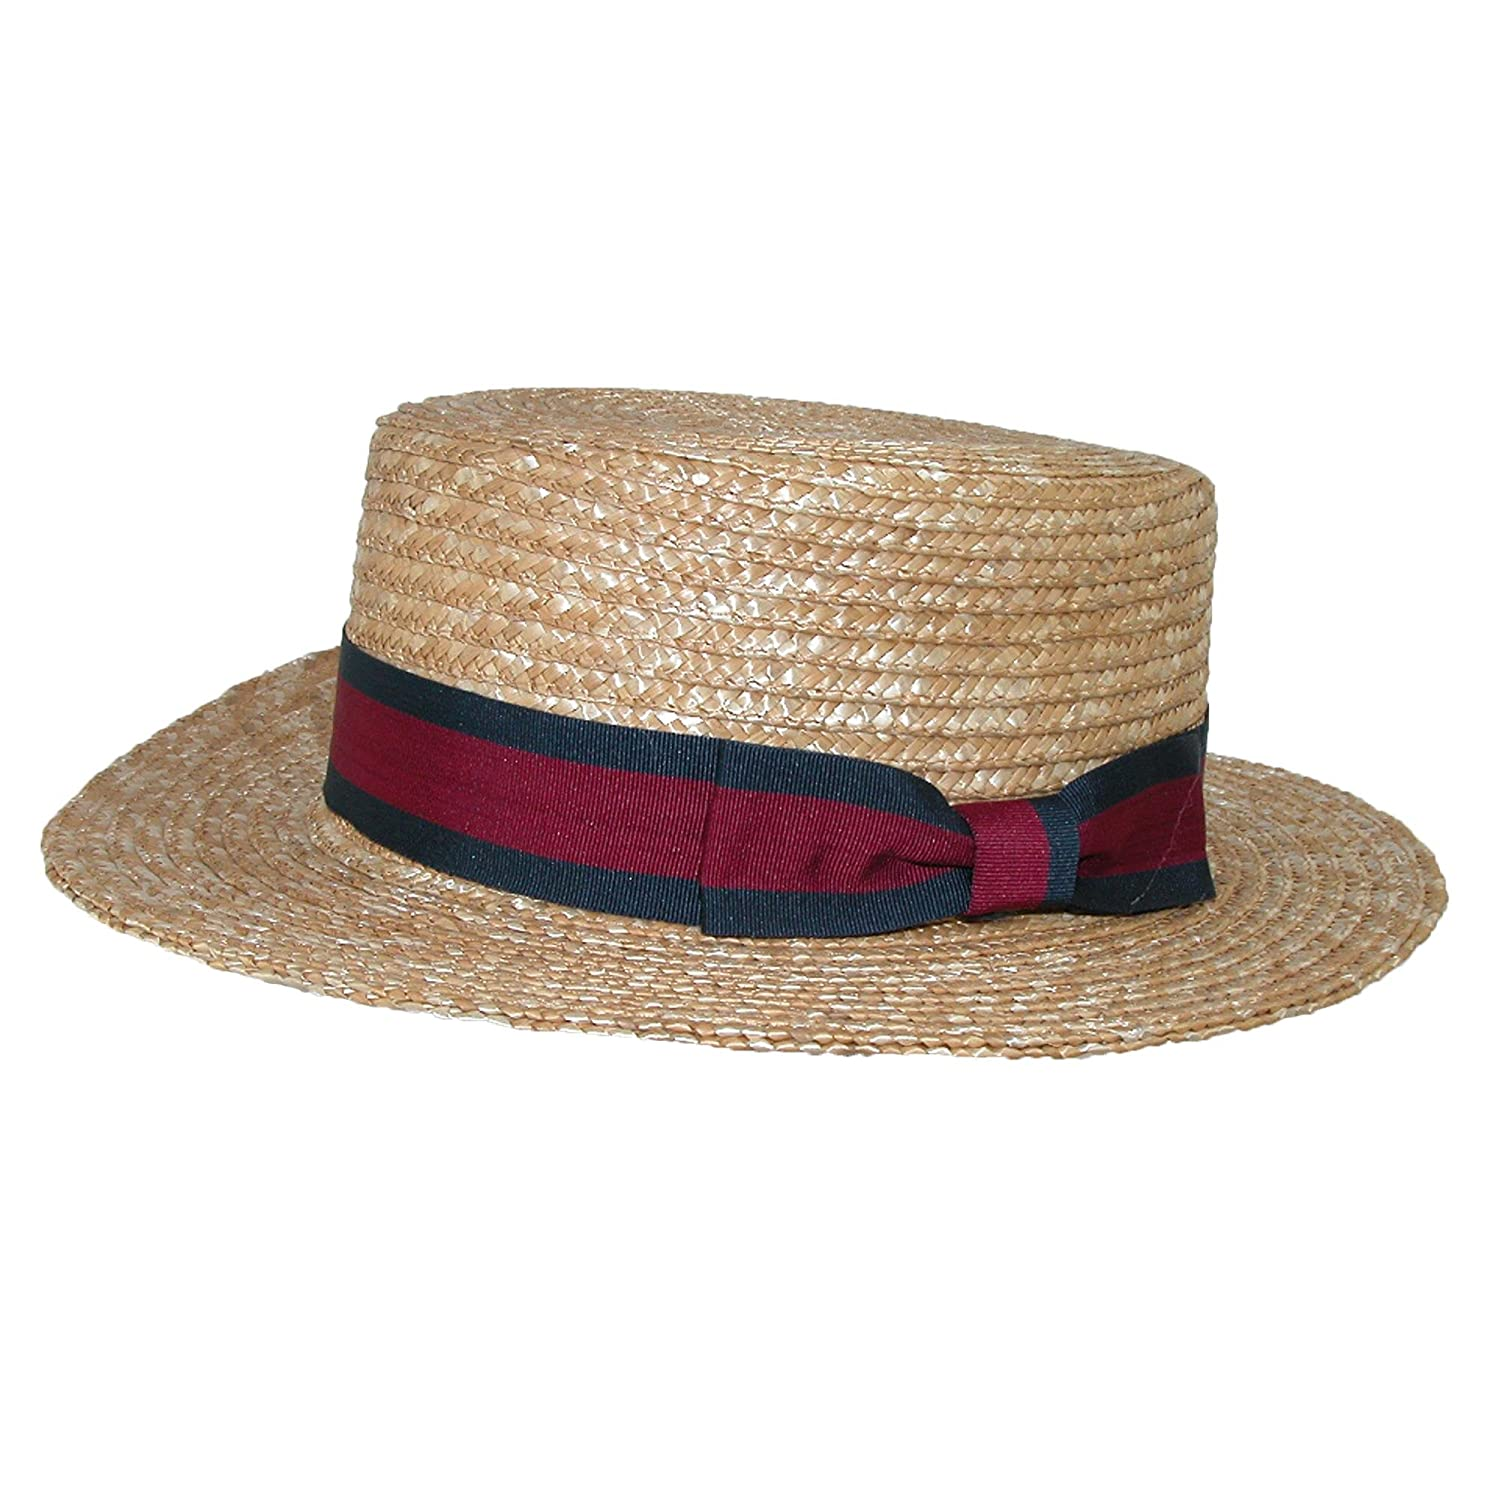 Men's Vintage Style Hats CTM Straw 2.5 Inch Brim Boater Hat with Navy Band $27.94 AT vintagedancer.com